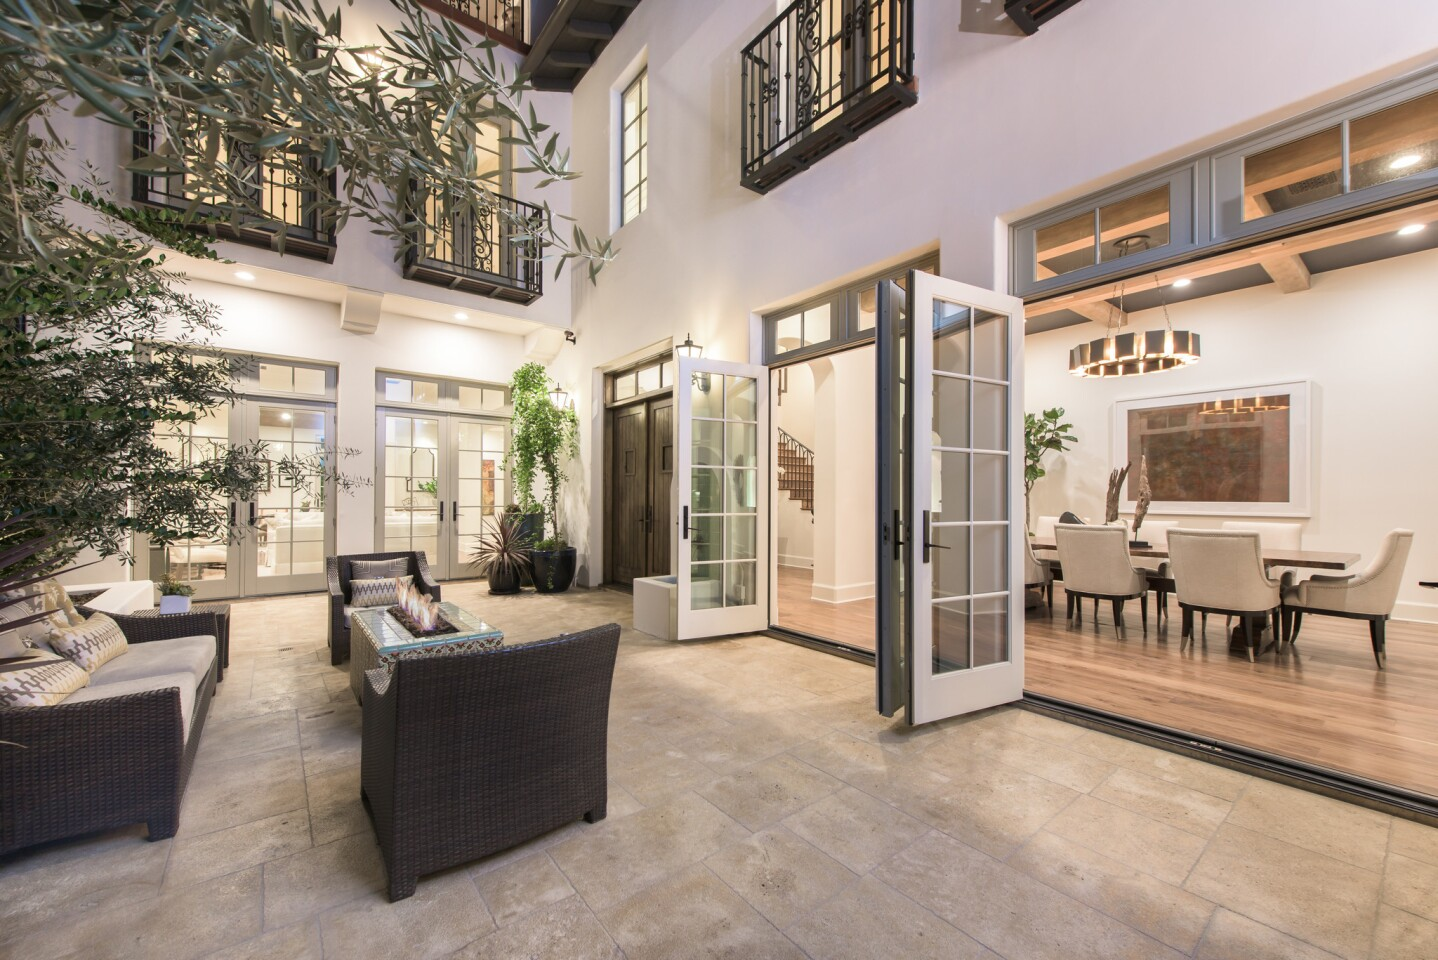 Home of the Day: Urban oasis in Century City